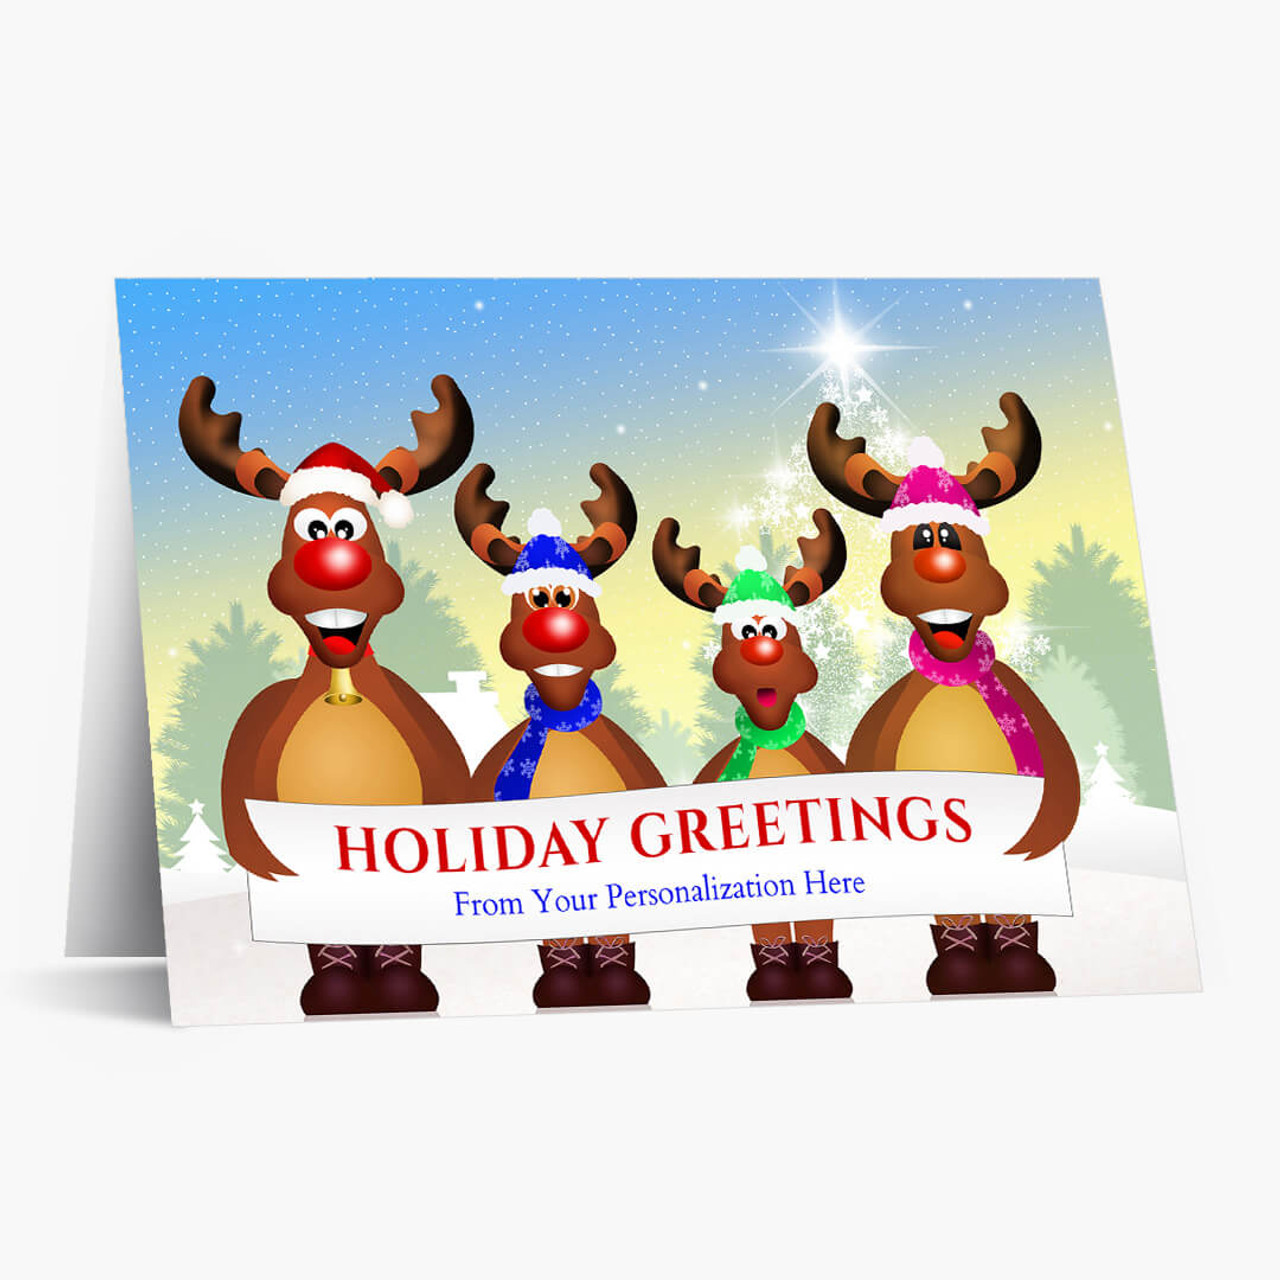 Group Greetings Christmas Card